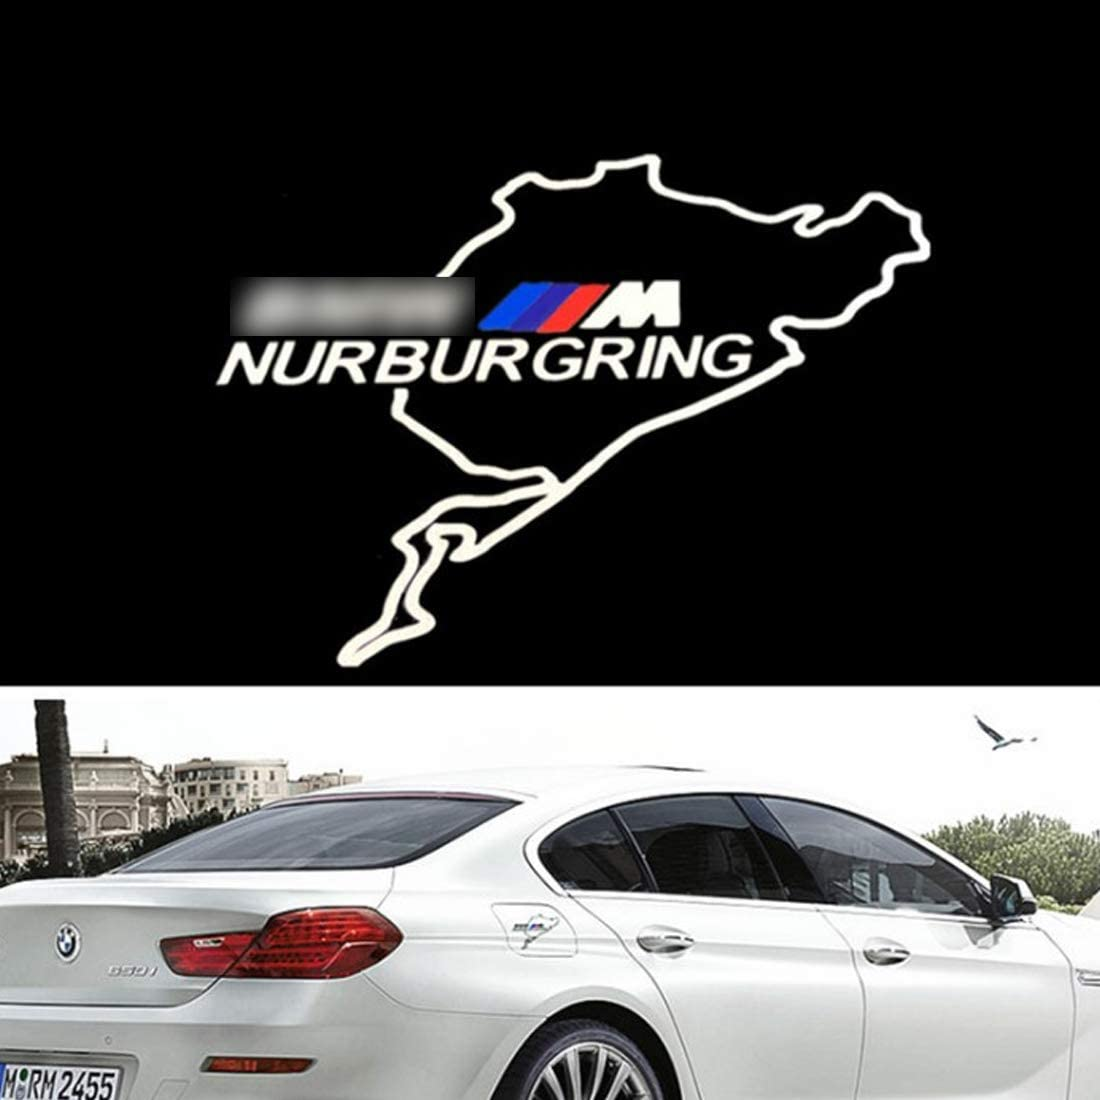 Demino Car Decoration M Performance Decals Tank Stickers for for Gas Fuel Tank Cap Cover Window Bumper Glass Door Stickers for BMW